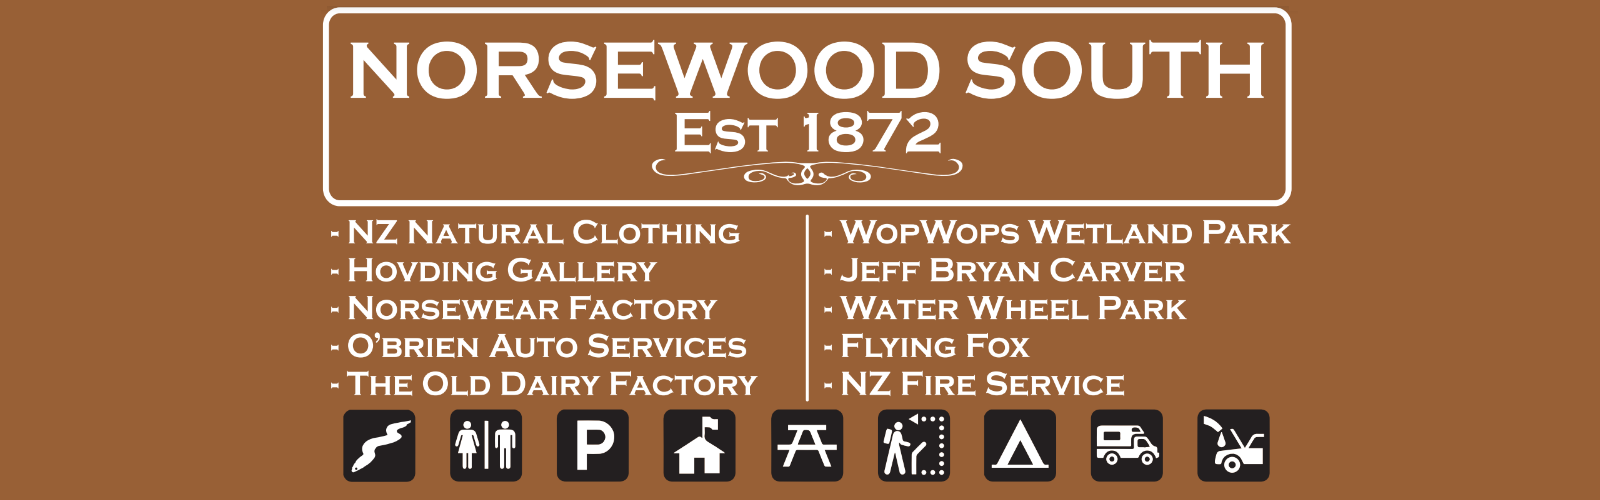 norsewood-south-banner.png